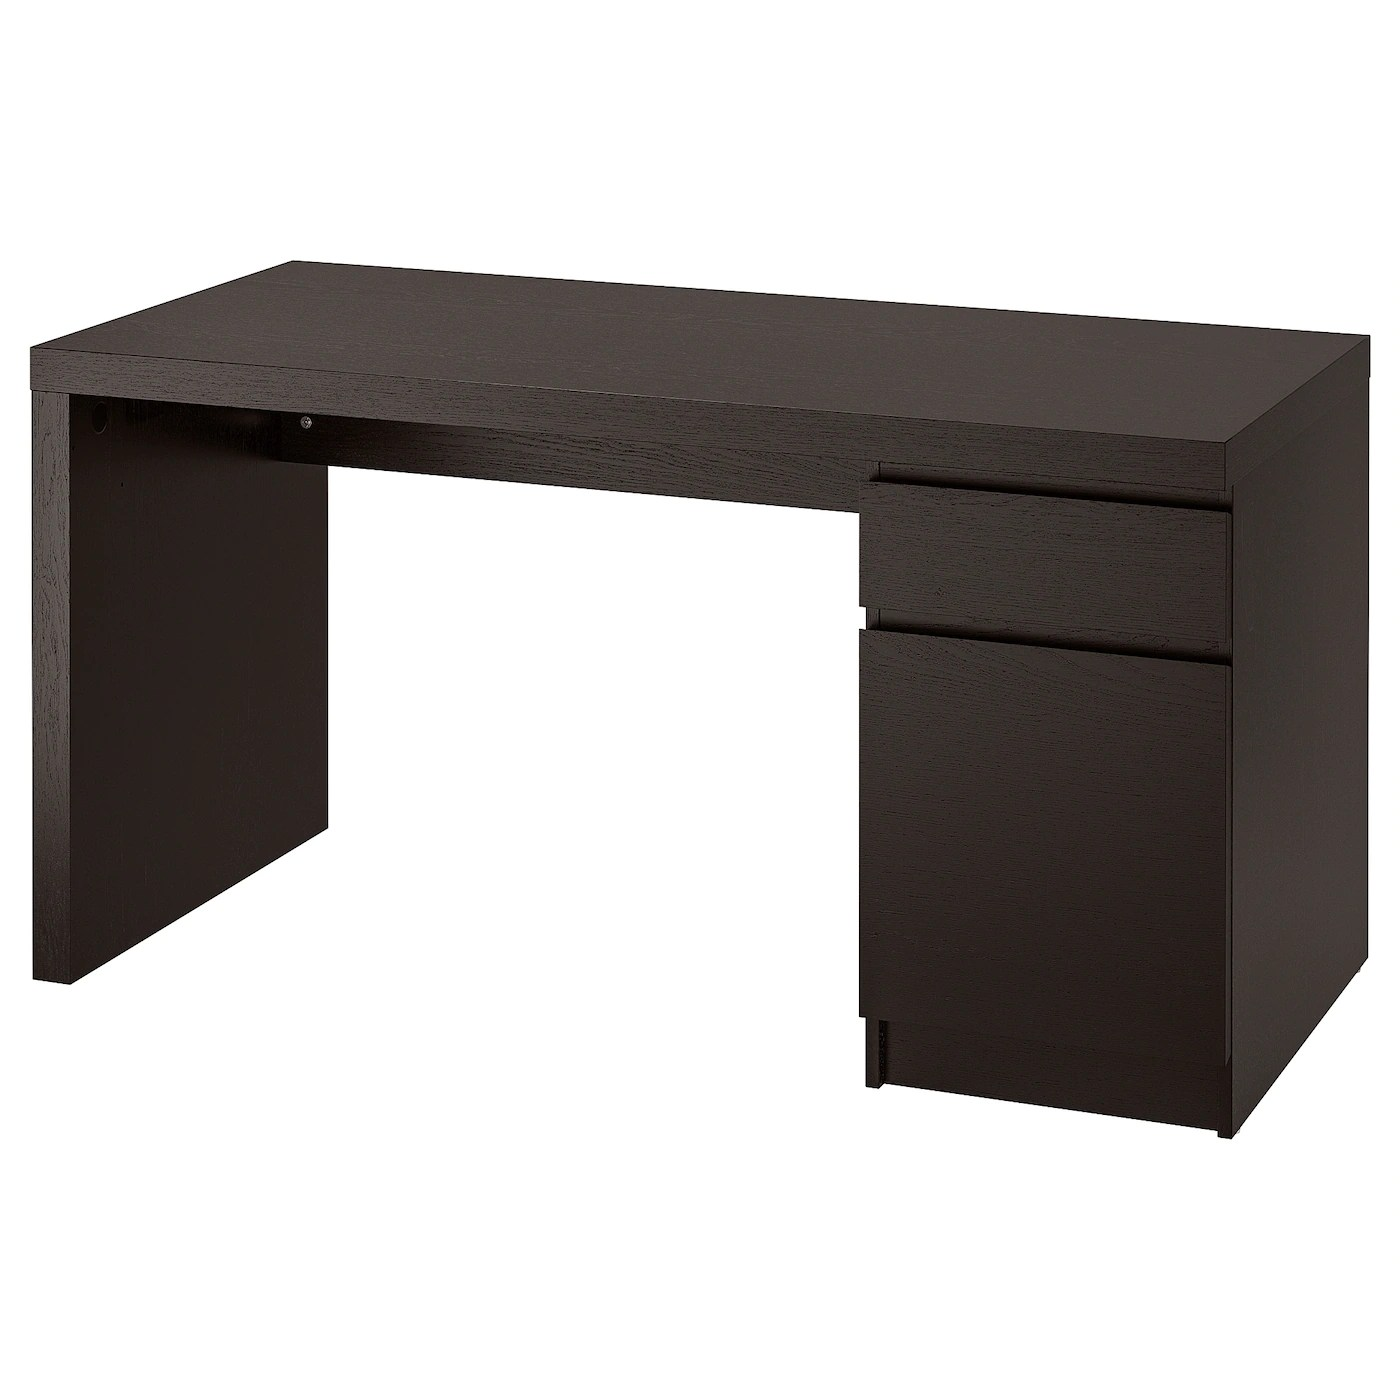 Malm Desk Black Brown 55 1 8x25 5 8